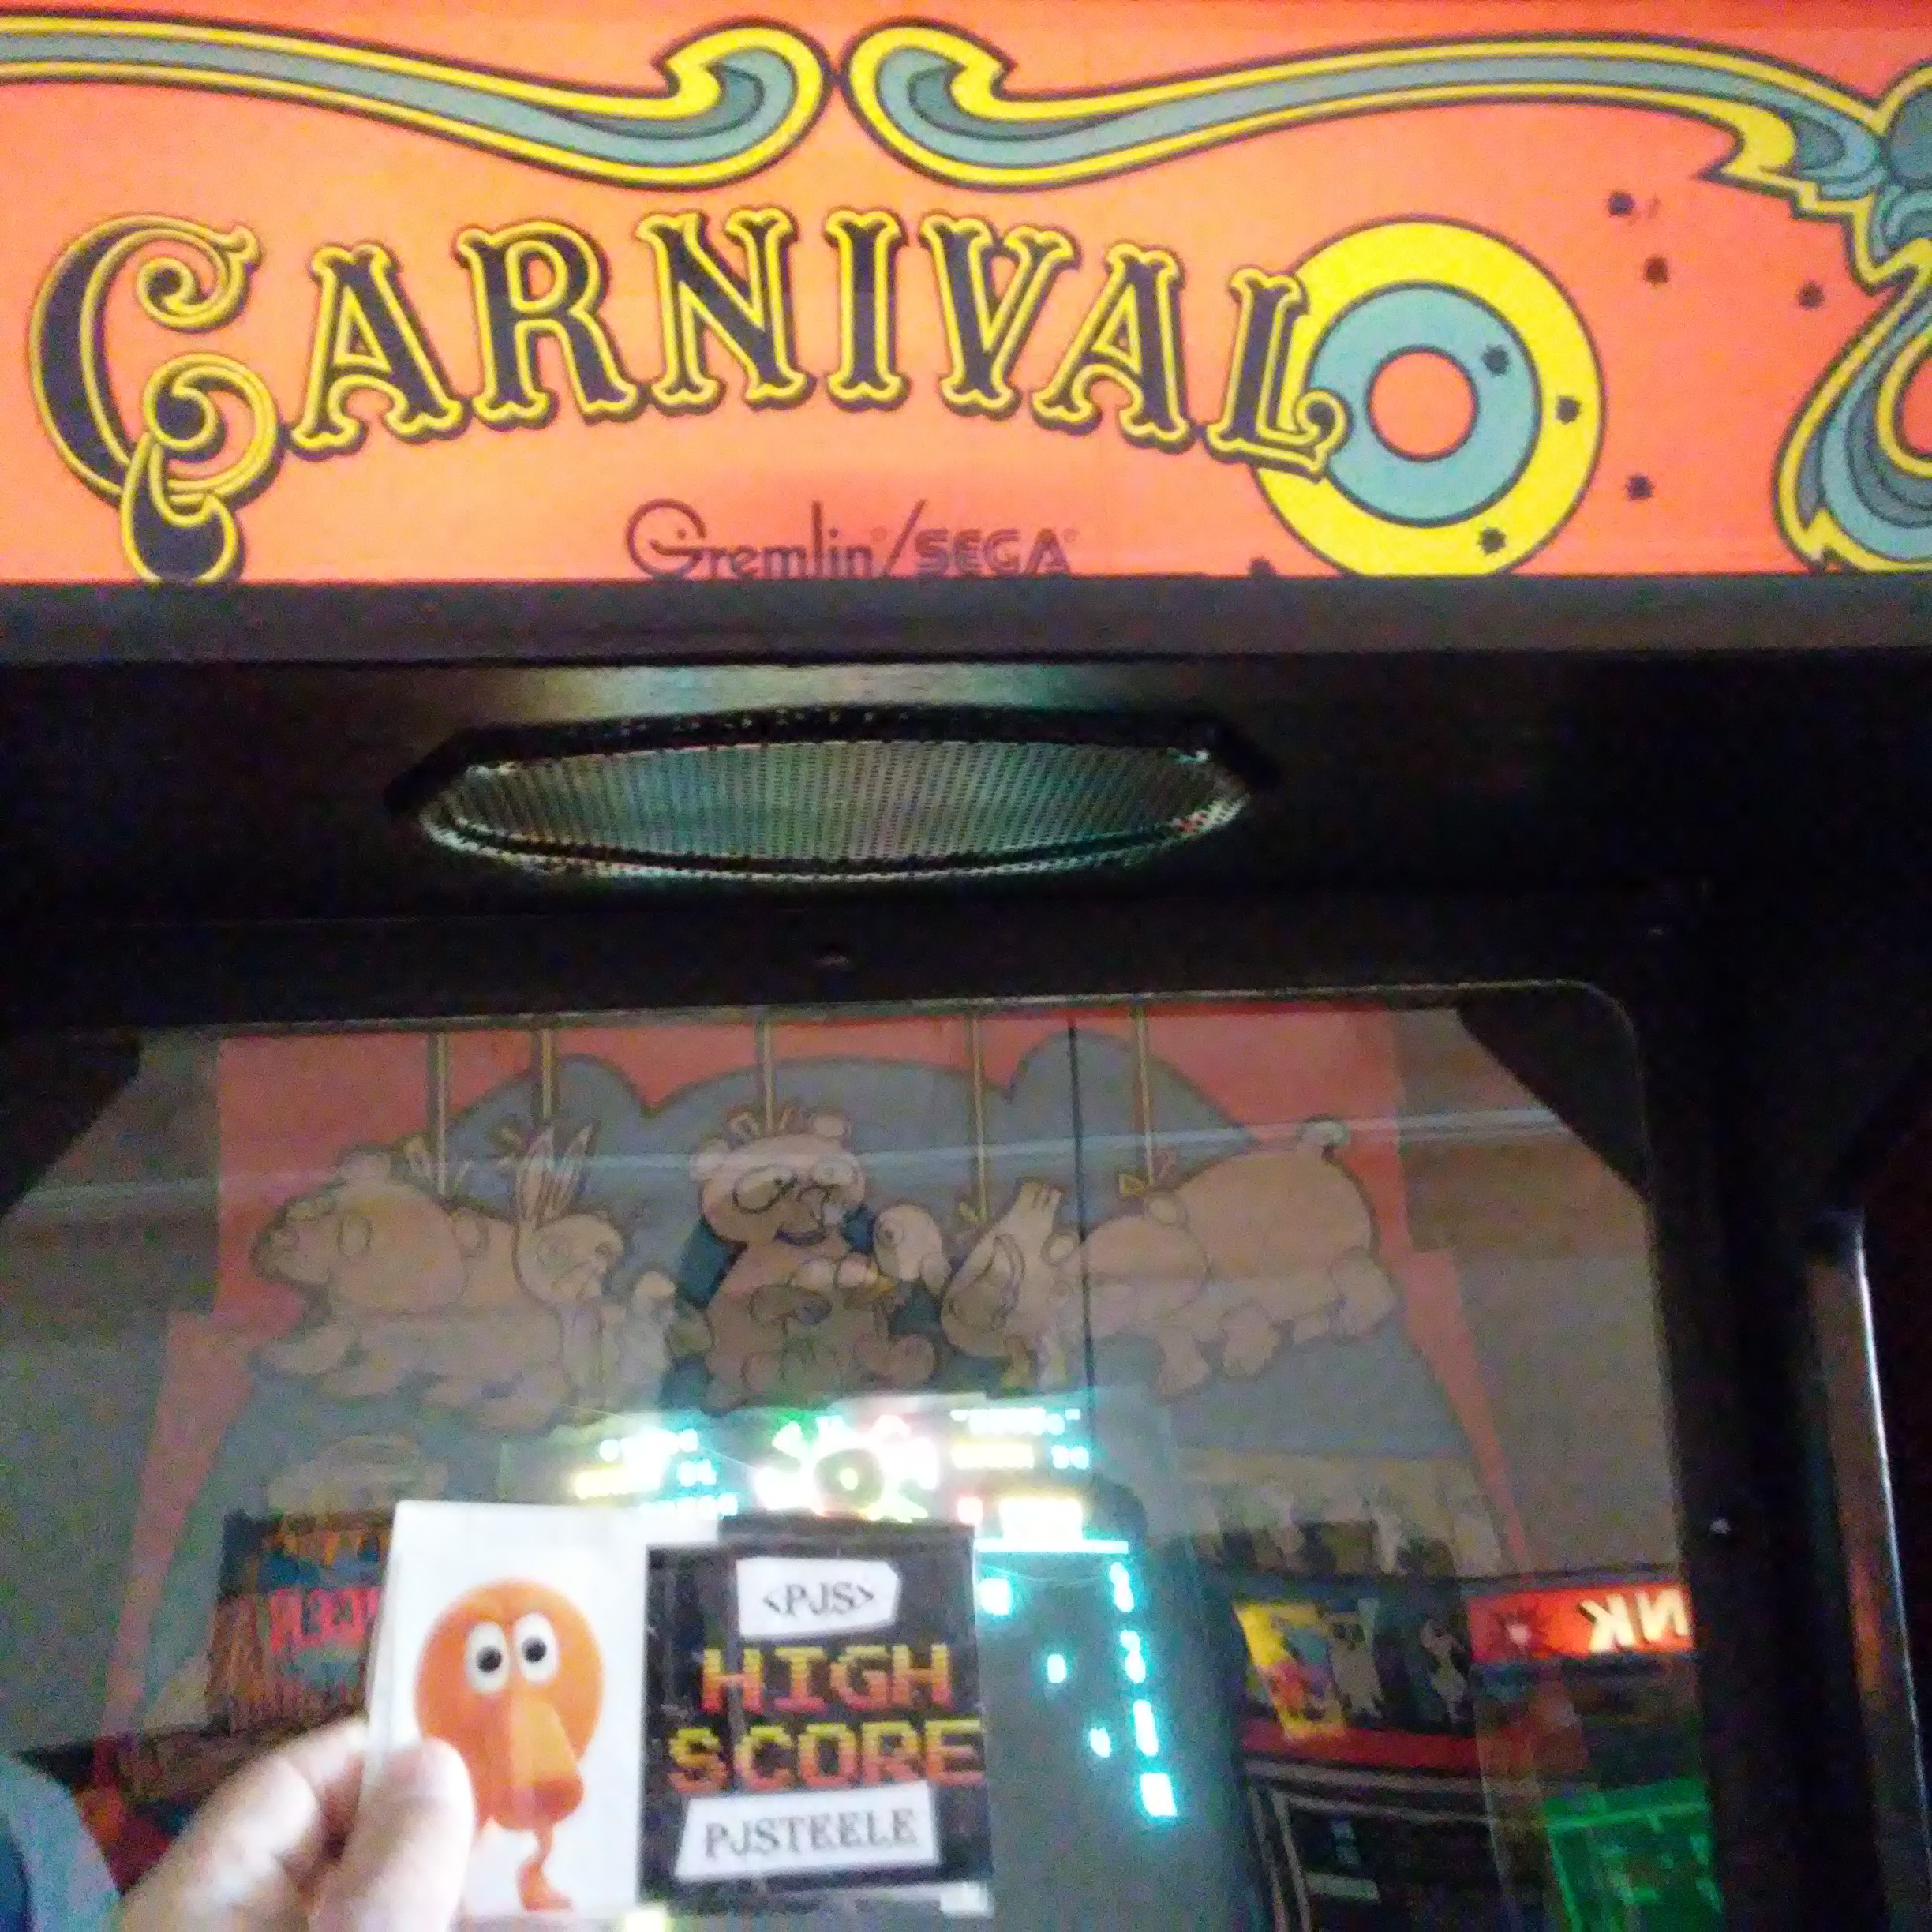 Carnival 4,720 points